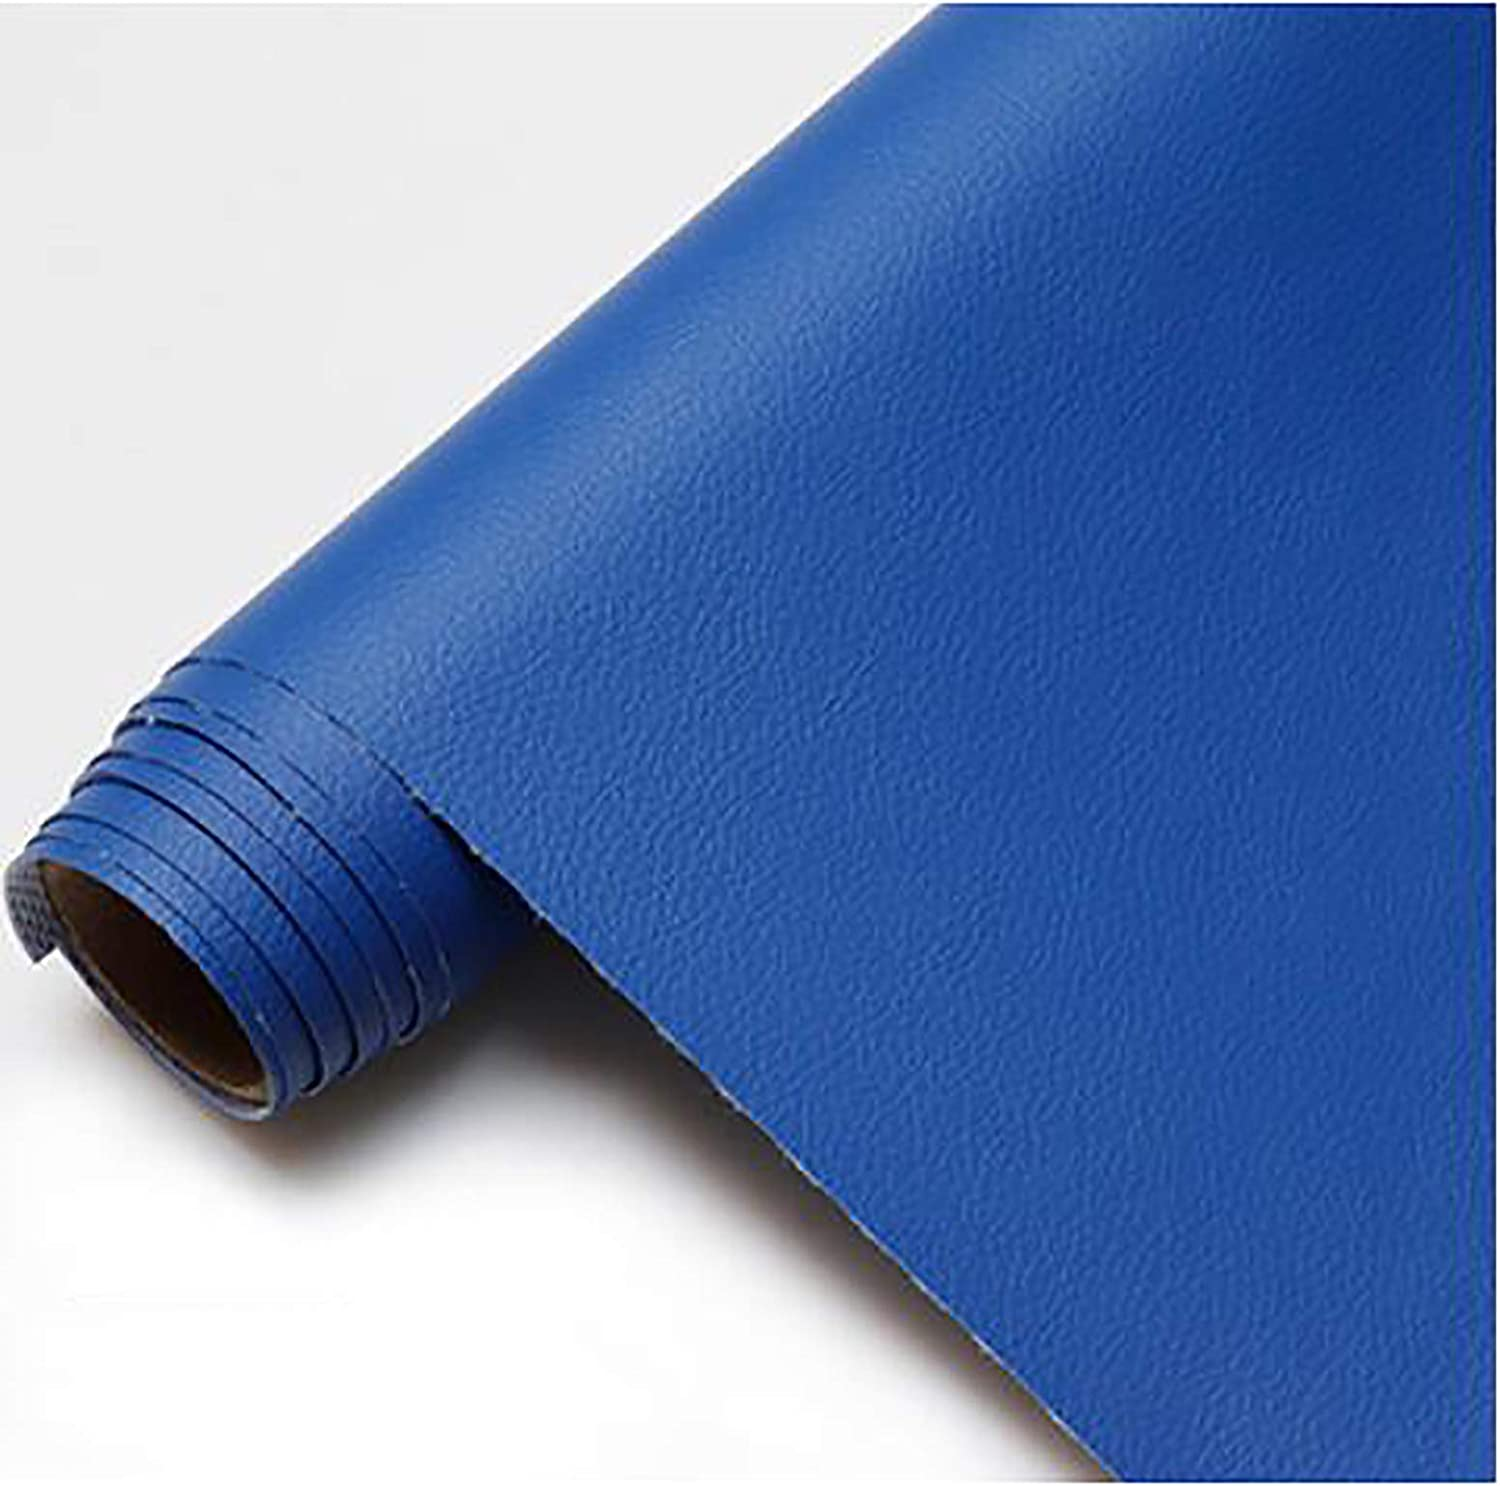 GERYUXA Faux Leather Faux Leather Sheets for Leather Bows and Earrings MakingFor Upholstery Faux Leather Car Material-Dark Blue t9 1.6x9m